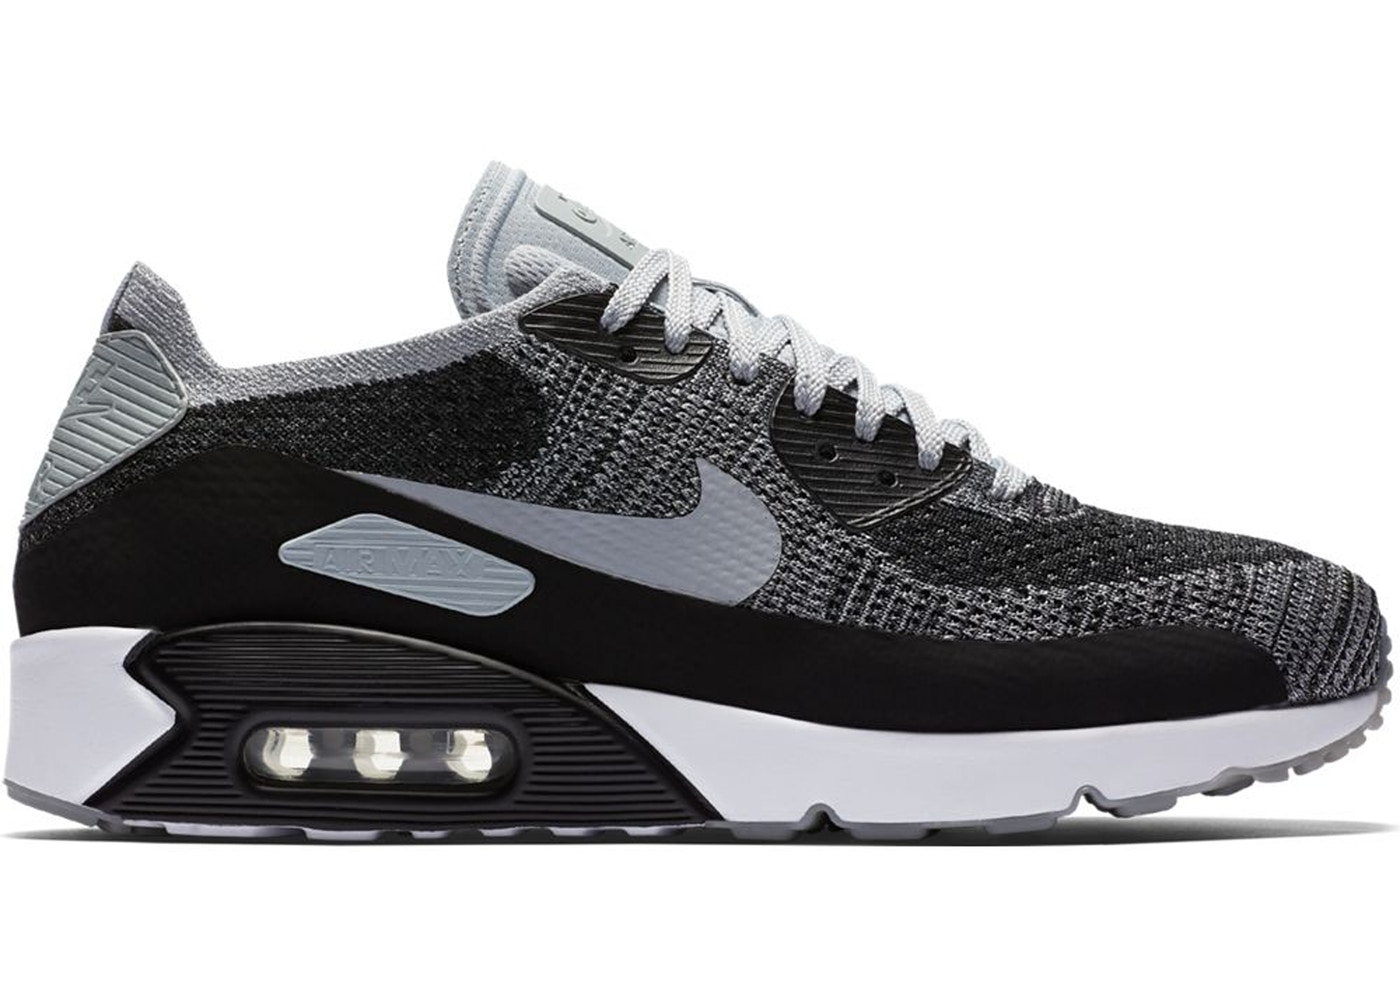 on sale e014d 3c1b5 Air Max 90 Ultra 2.0 Flyknit Black Wolf Grey